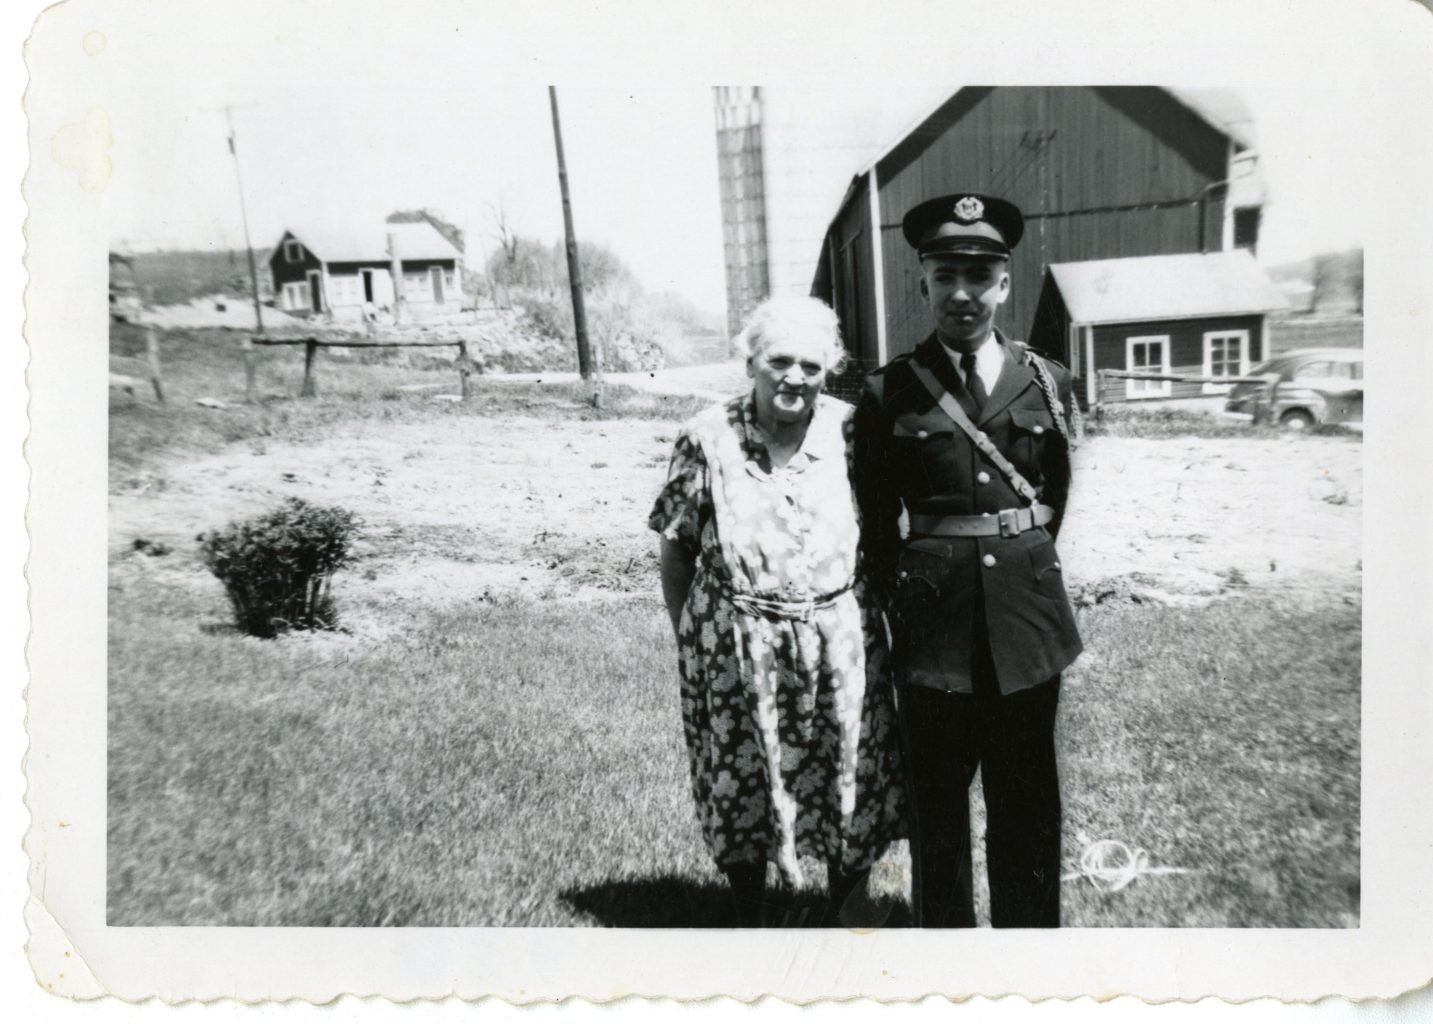 Mrs. Koeninger and George pose for photo outside on farm.